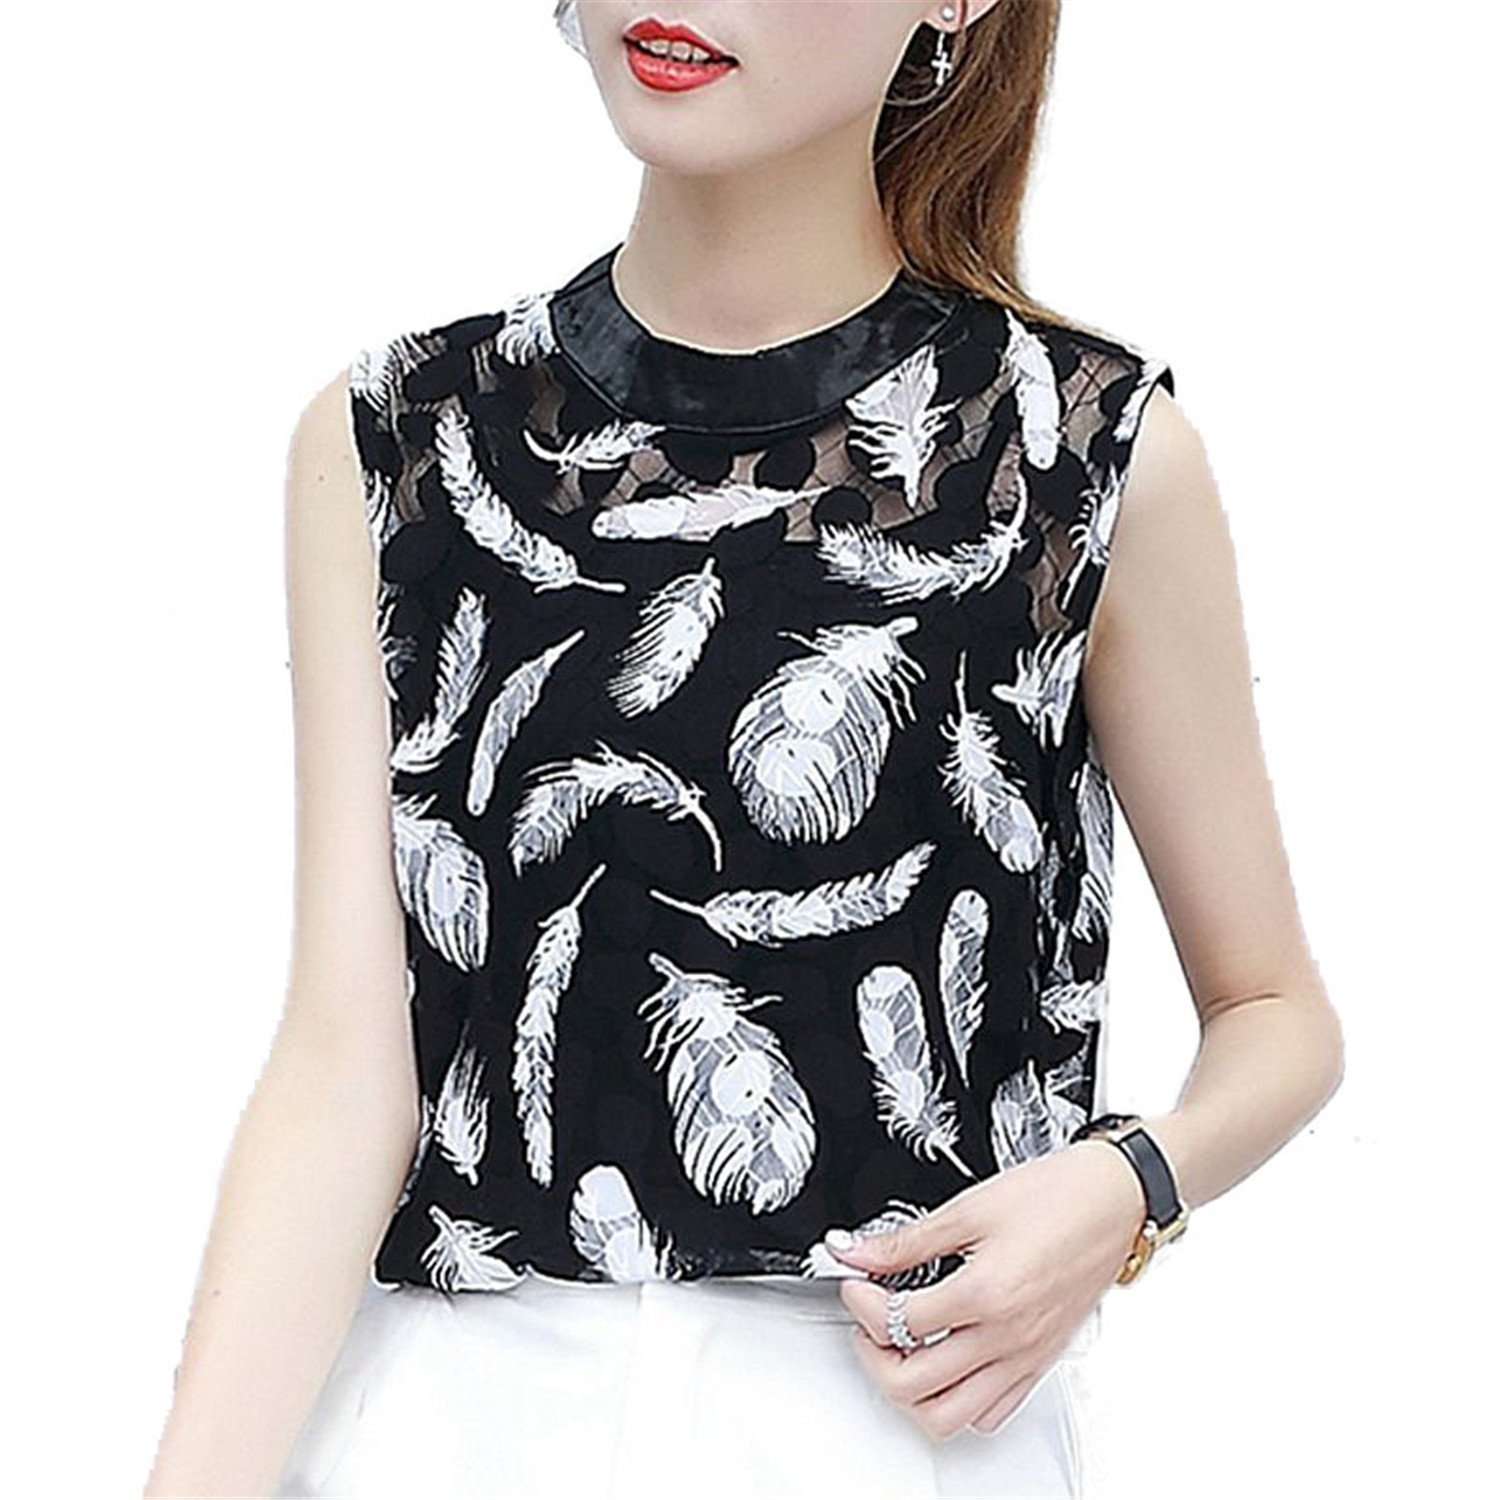 OUXIANGJU Summer Women Feather Print Shirts Black Lace Tops Sleeveless Beading Zipper Blouse at Amazon Womens Clothing store: